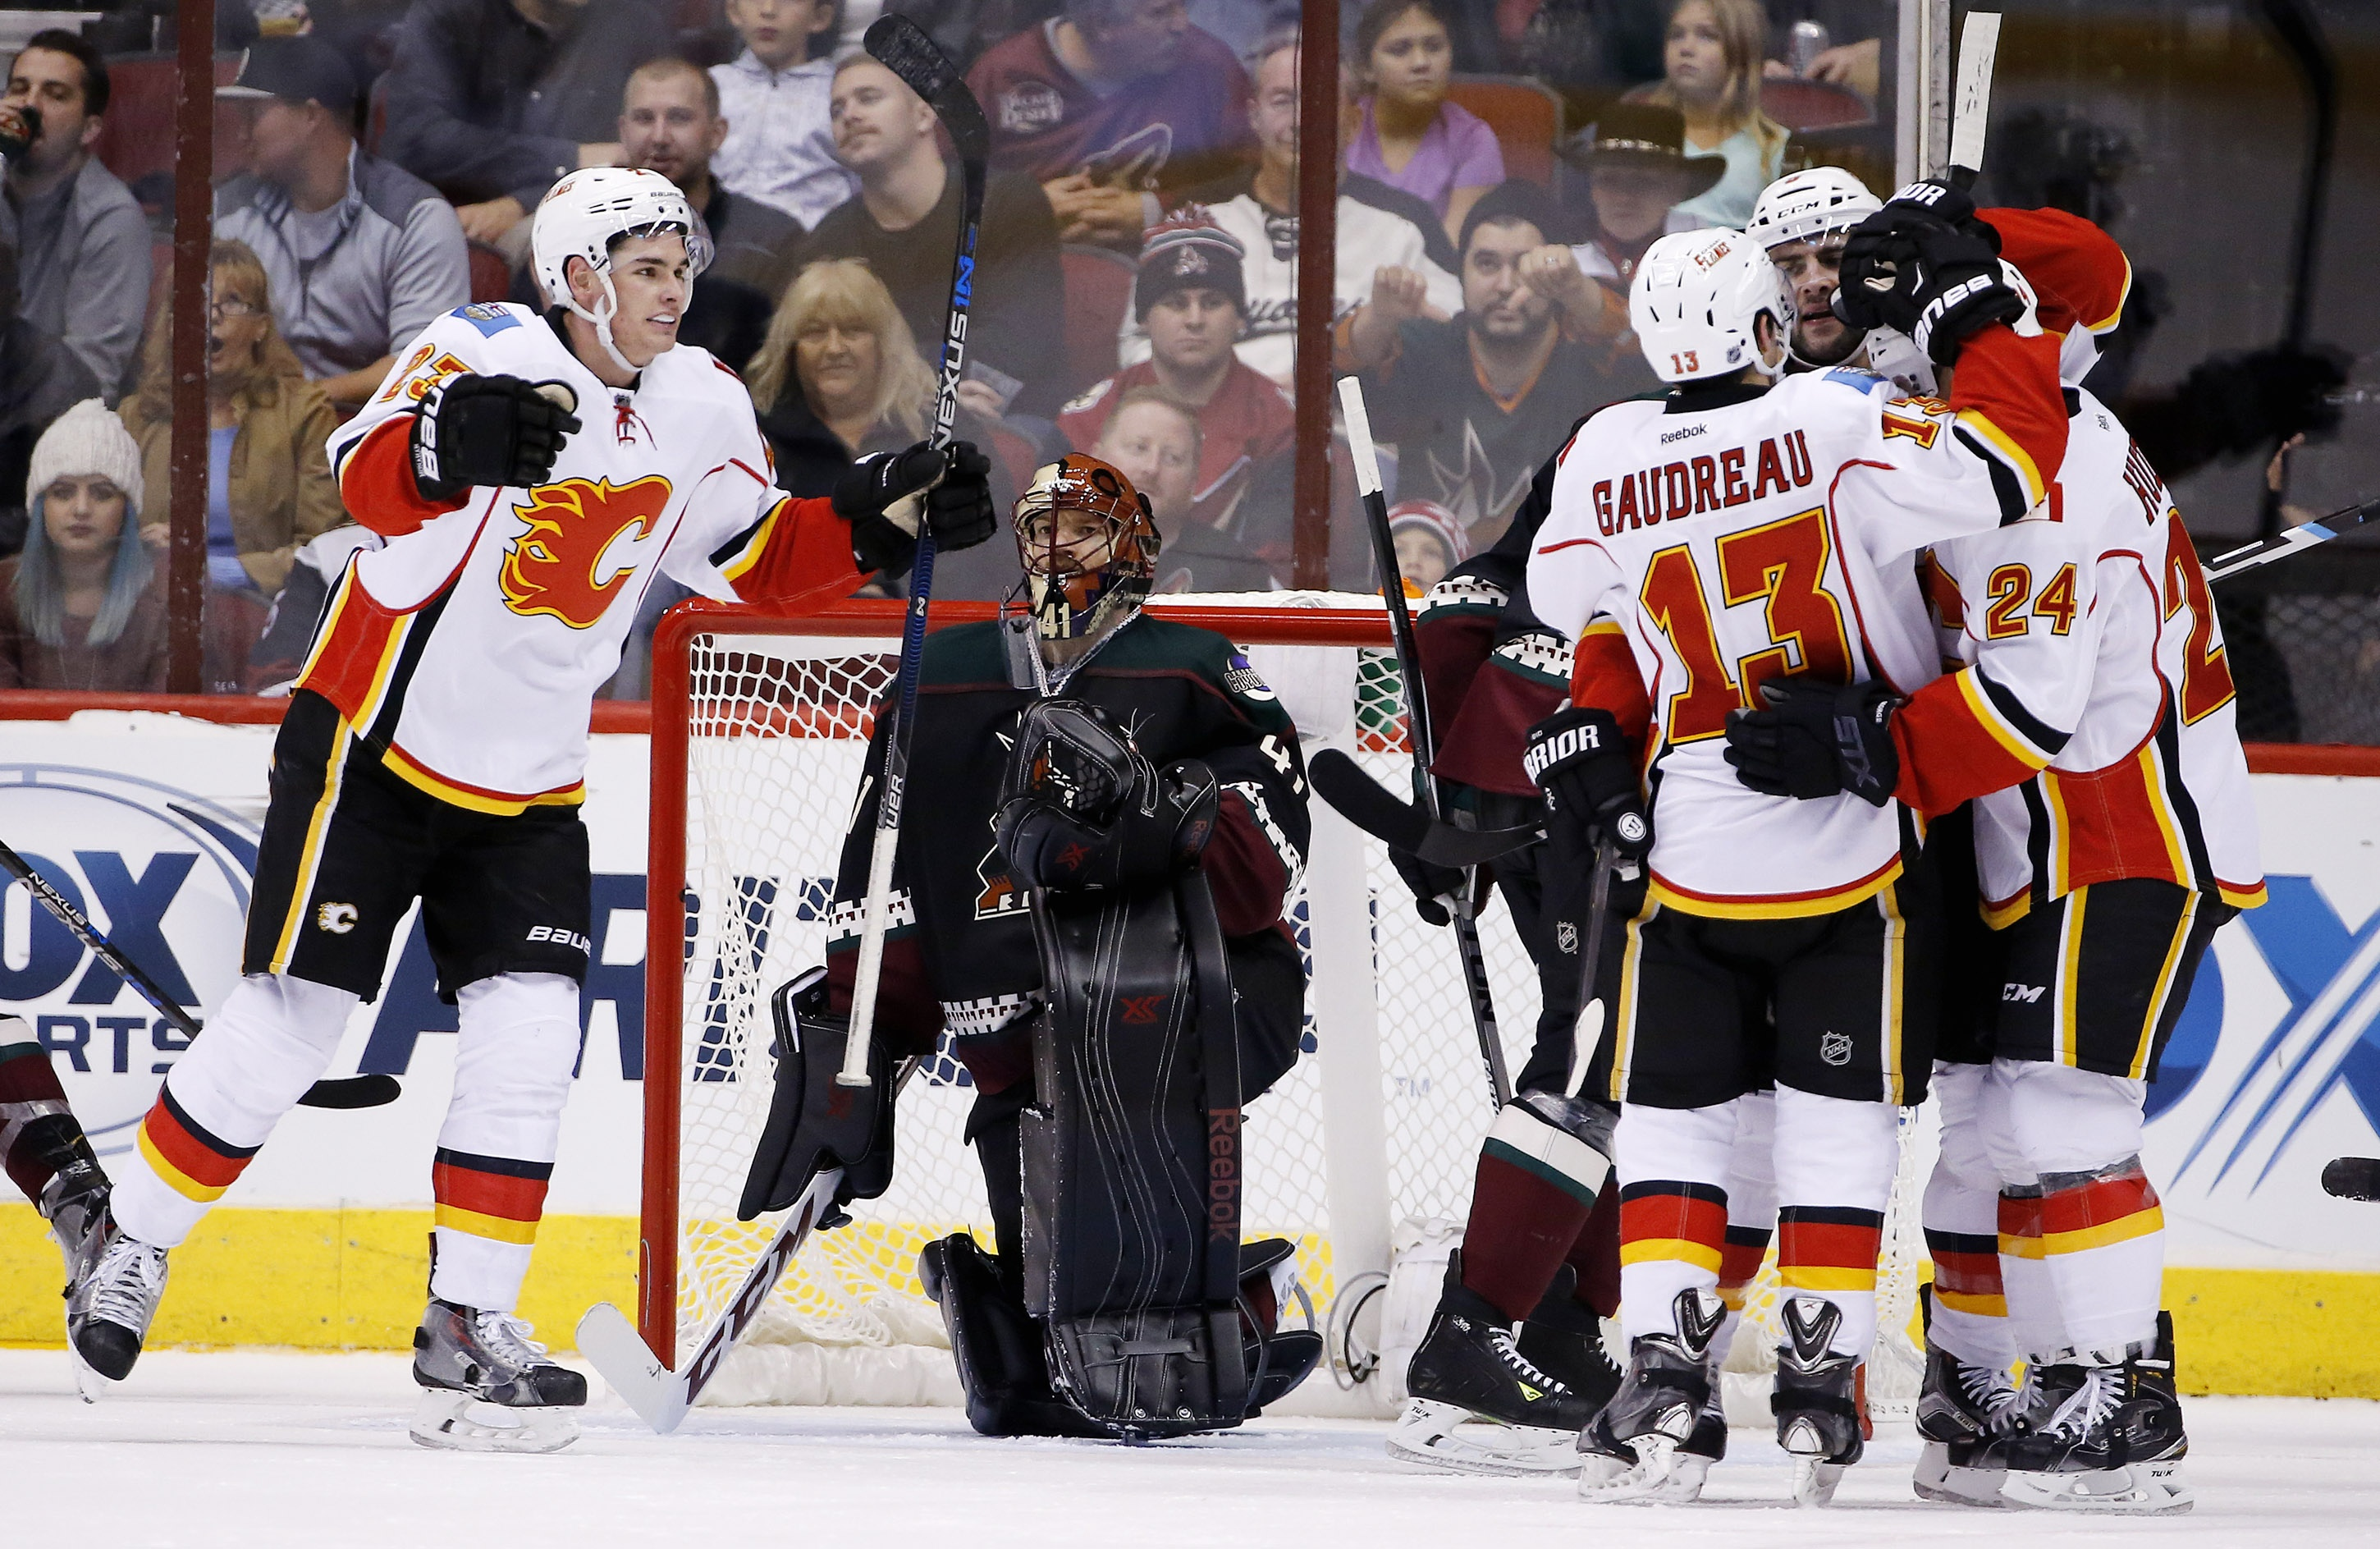 Calgary Flames' Mark Giordano celebrates his goal against Arizona Coyotes' Mike Smith, second from left, with teammates Johnny Gaudreau (13), Jiri Hudler (24), of the Czech Republic, and Sean Monahan, left, during the second period of an NHL hockey game F